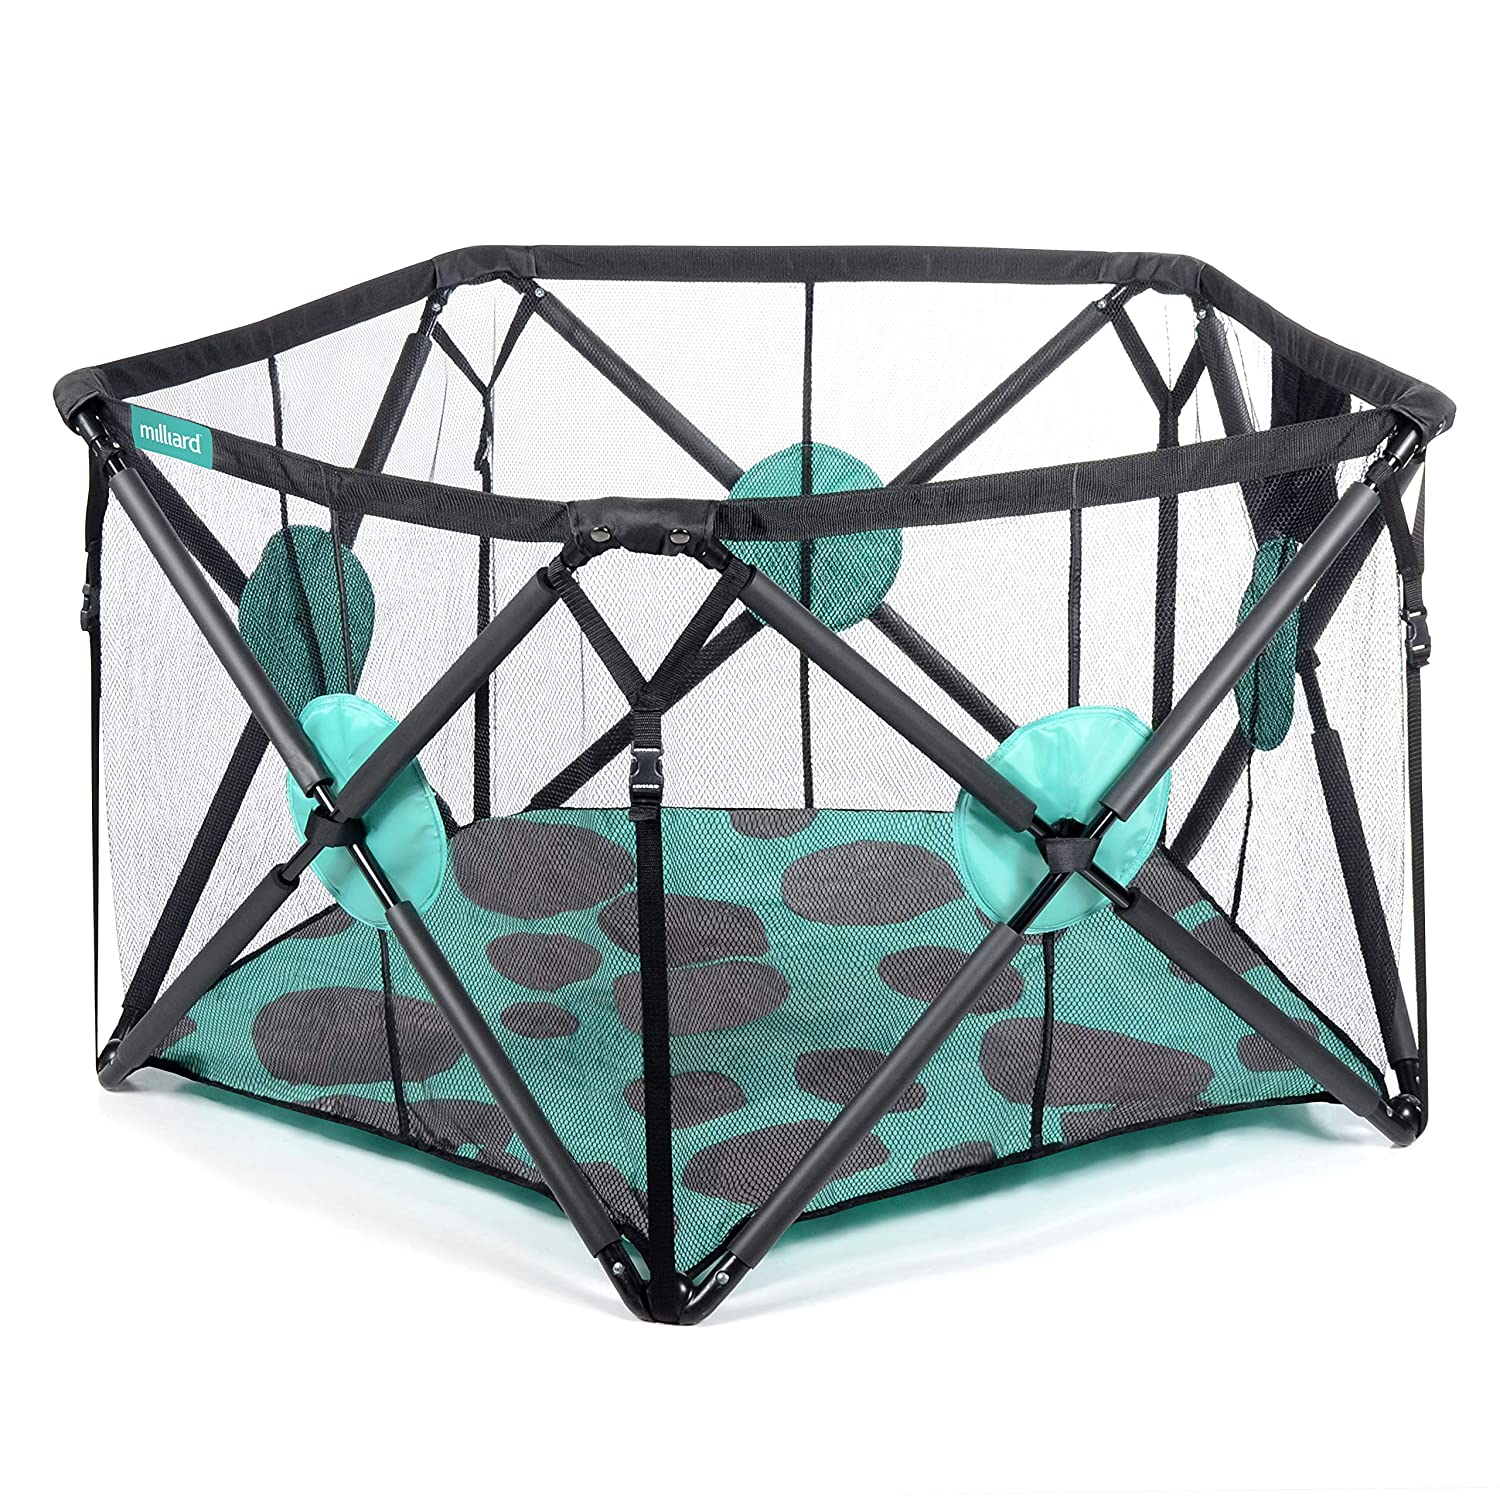 Milliard Playpen Portable Playard with Cushioning for Safety, for Travel, Indoor and Outdoor Play Yard Pen Large